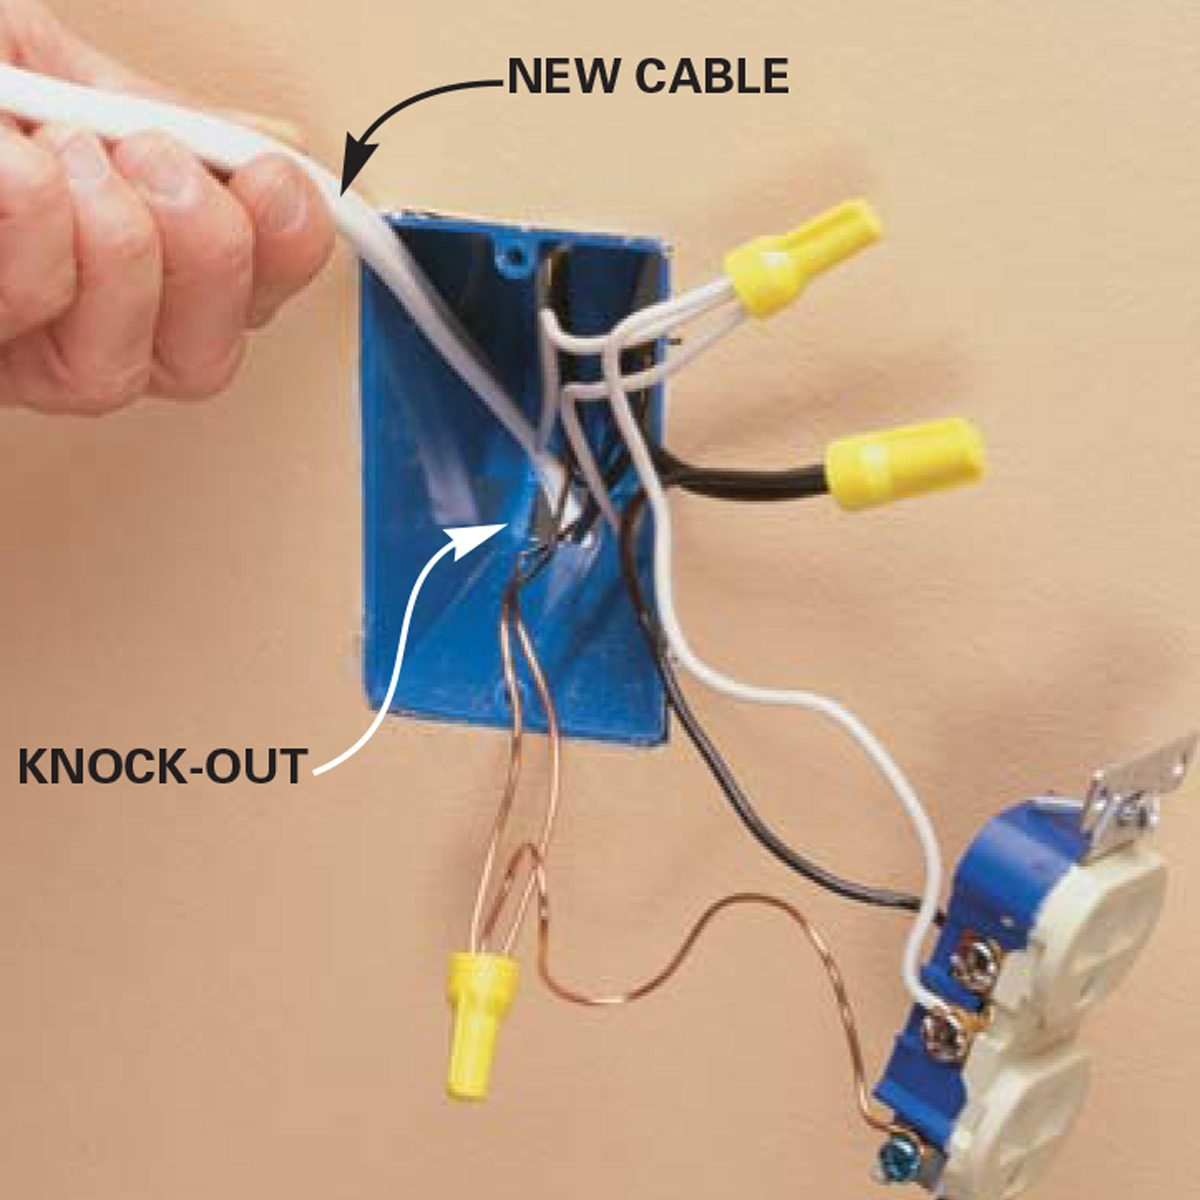 Feed new cable into the wall